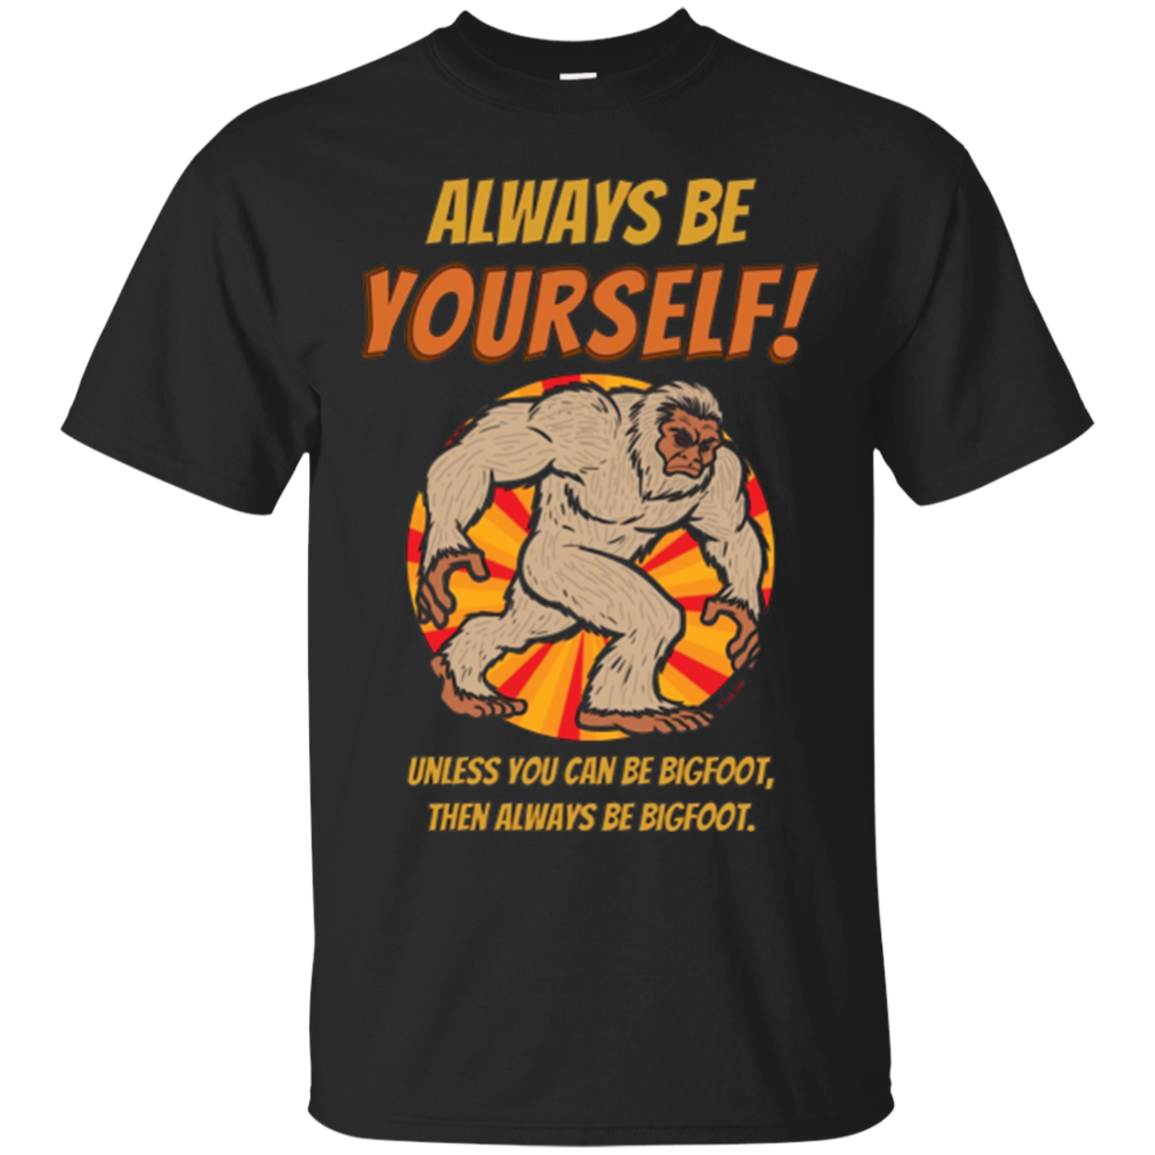 Always Be Yourself - Bigfoot Shirt